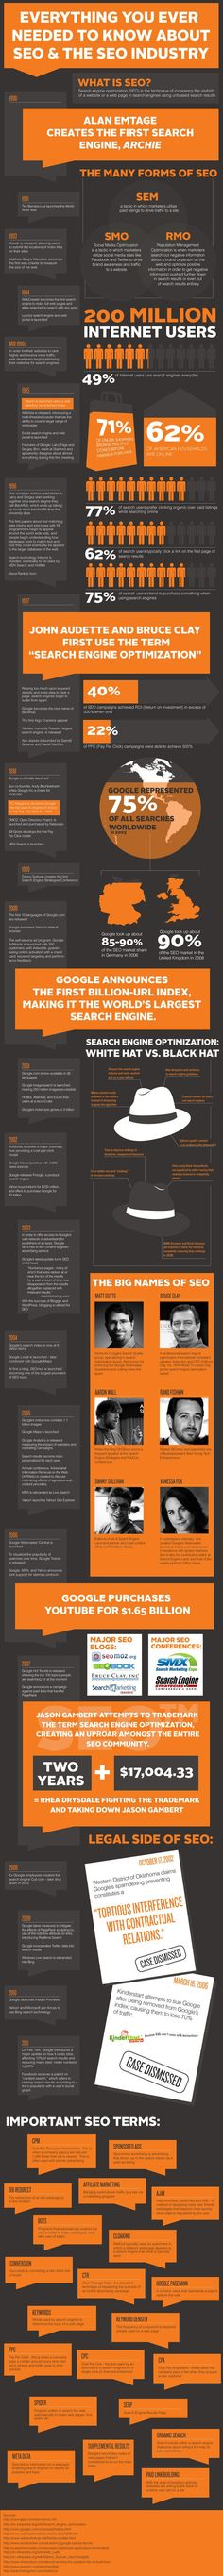 Everything you'd ever need to know about SEO/the world's largest infographic...